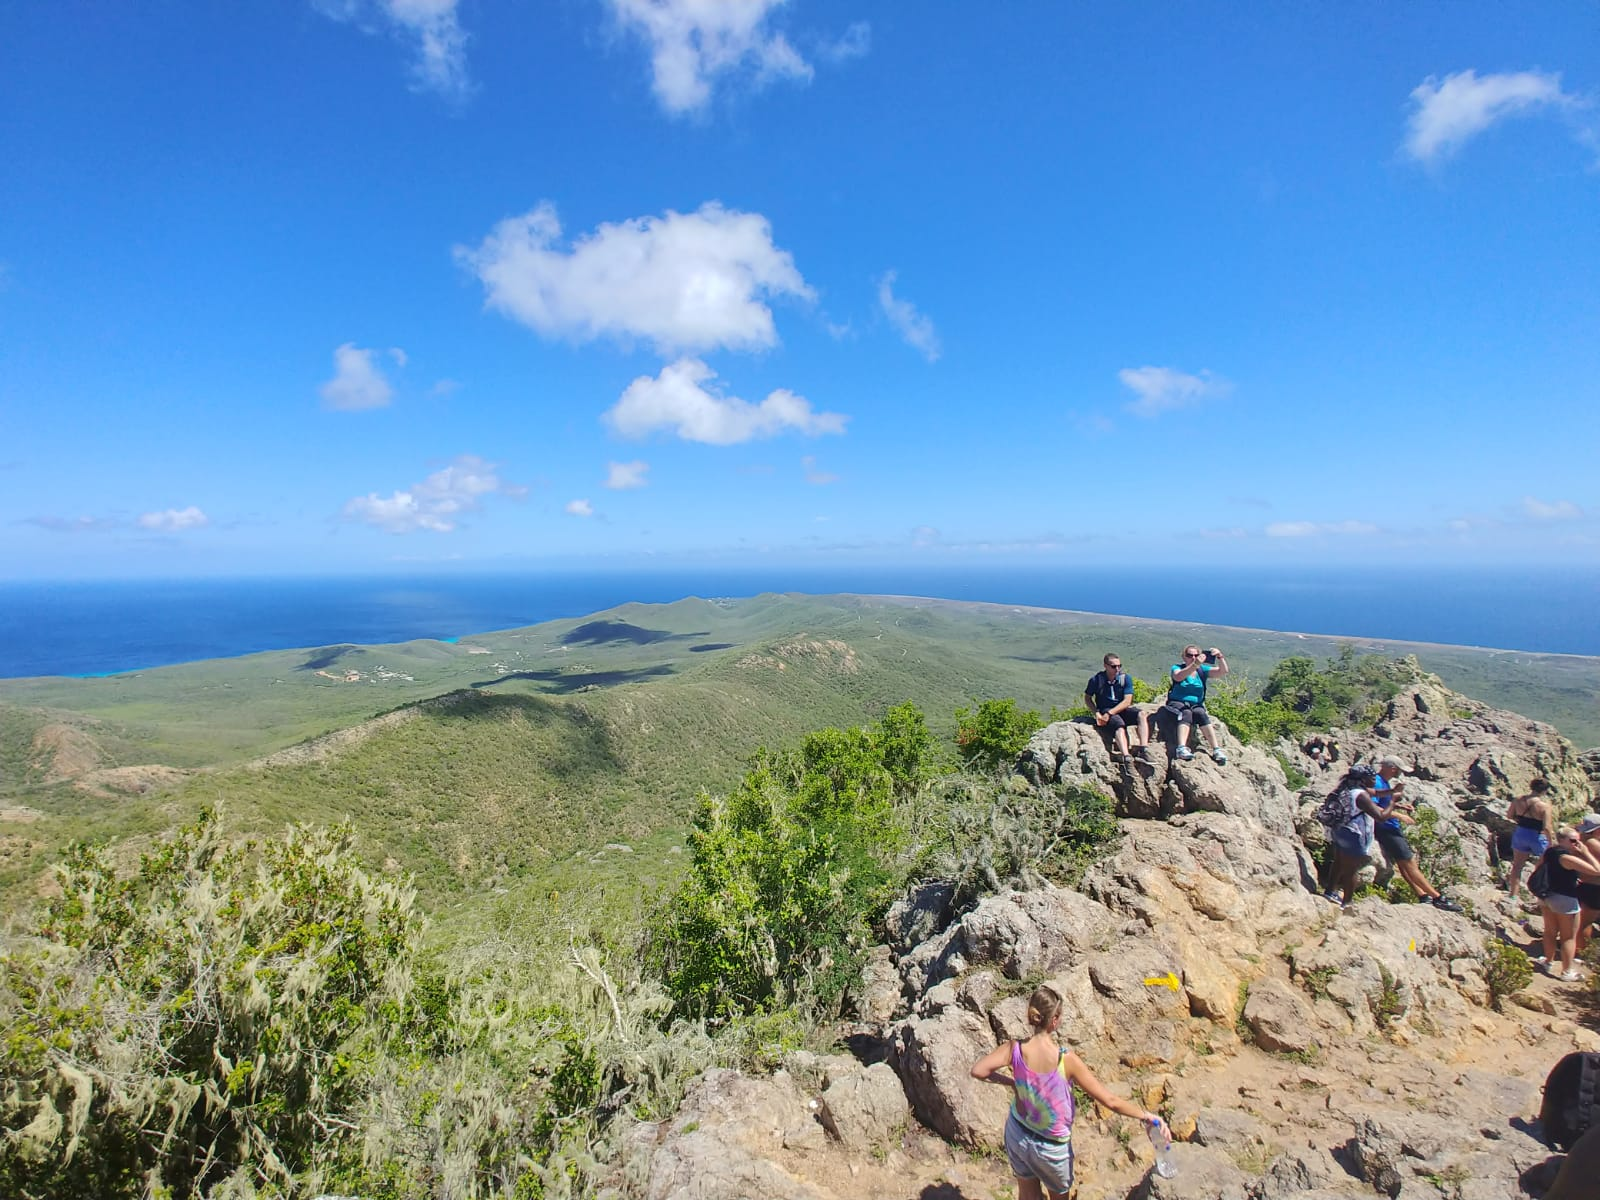 Reaching the top or Mount Christoffel